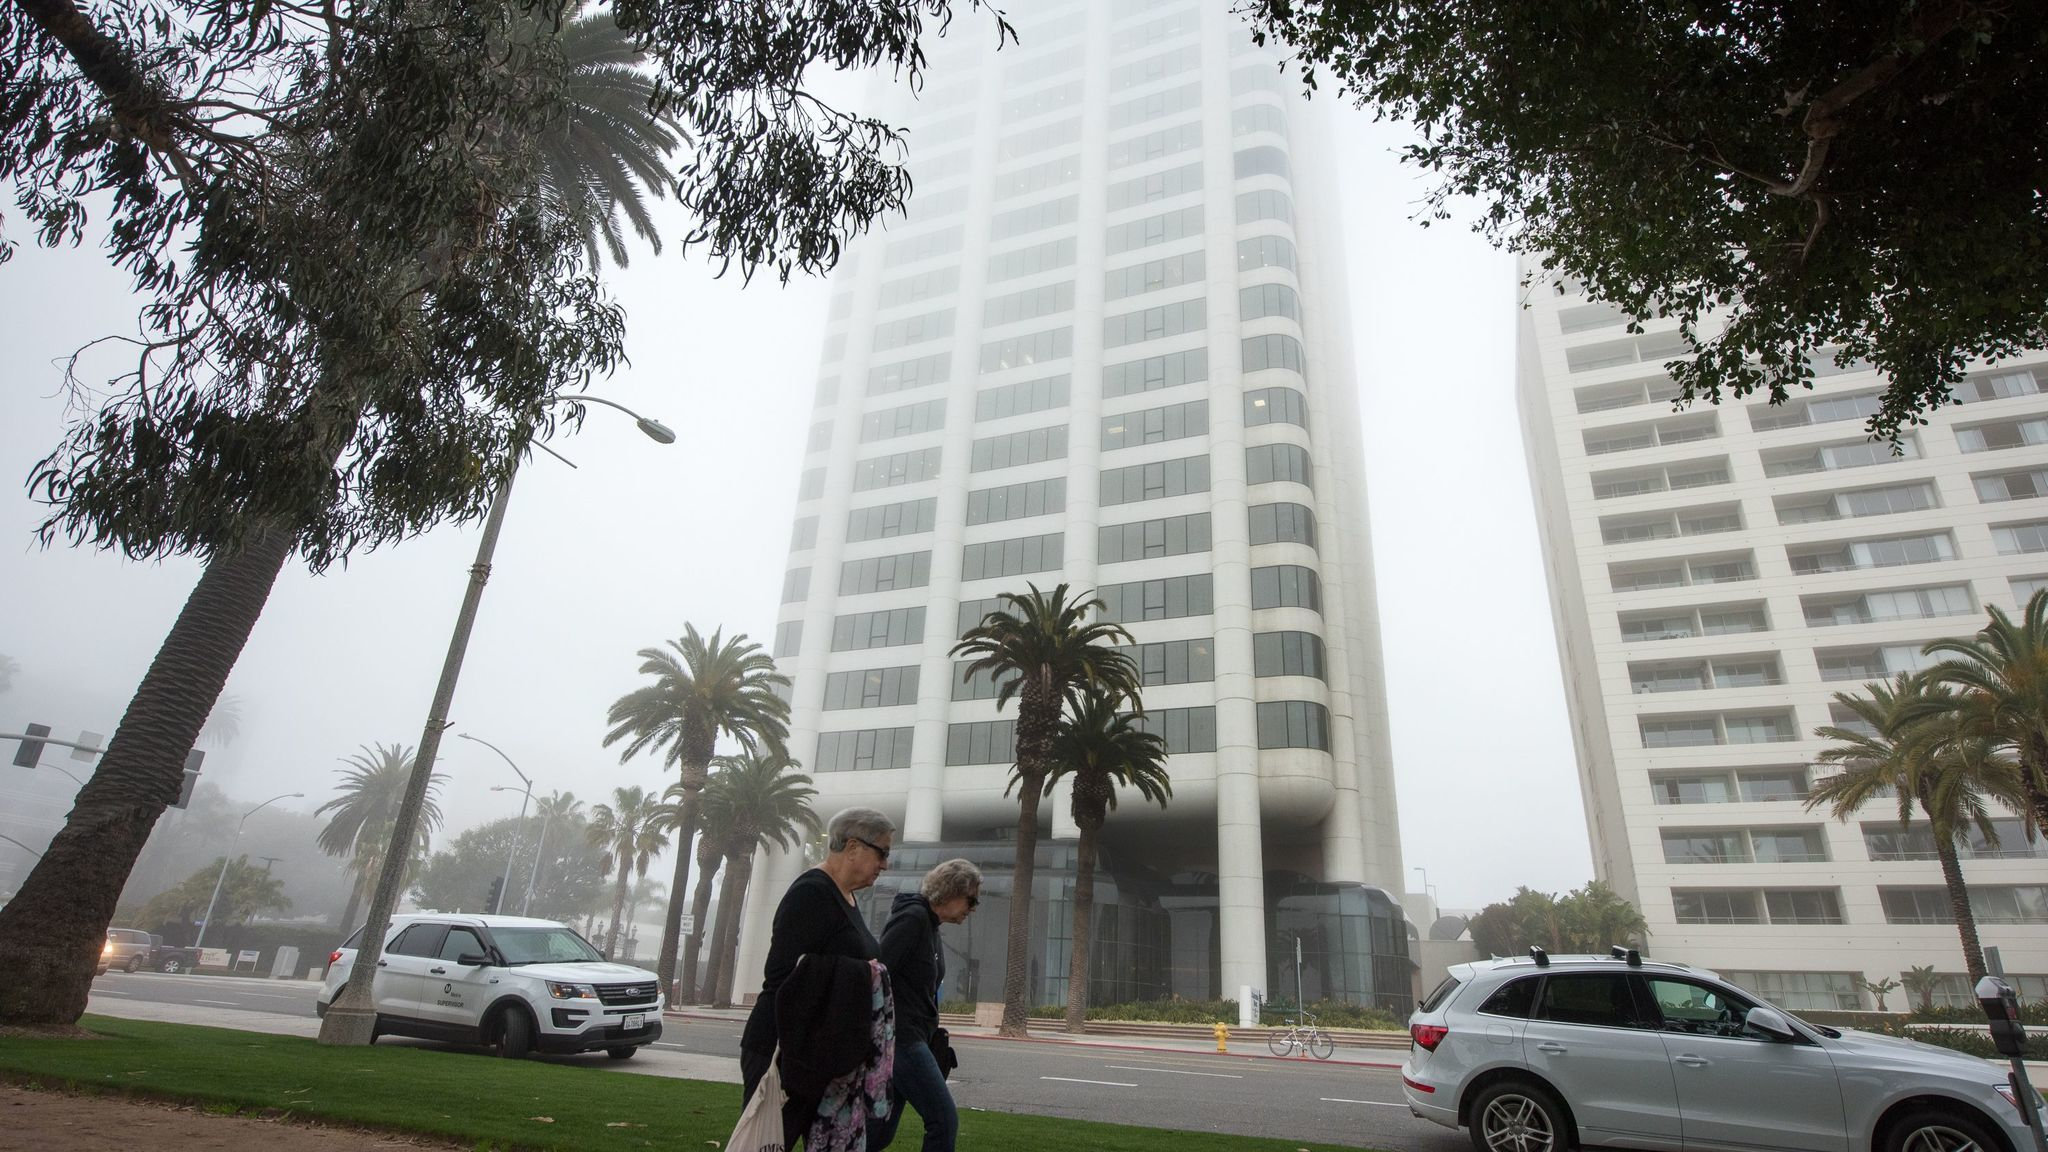 A 21-story building, listed by the city as concrete, could be required to undergo a seismic evaluation if the City Council passes a new law. There are 64 suspected brittle concrete buildings in Santa Monica, according to the city.